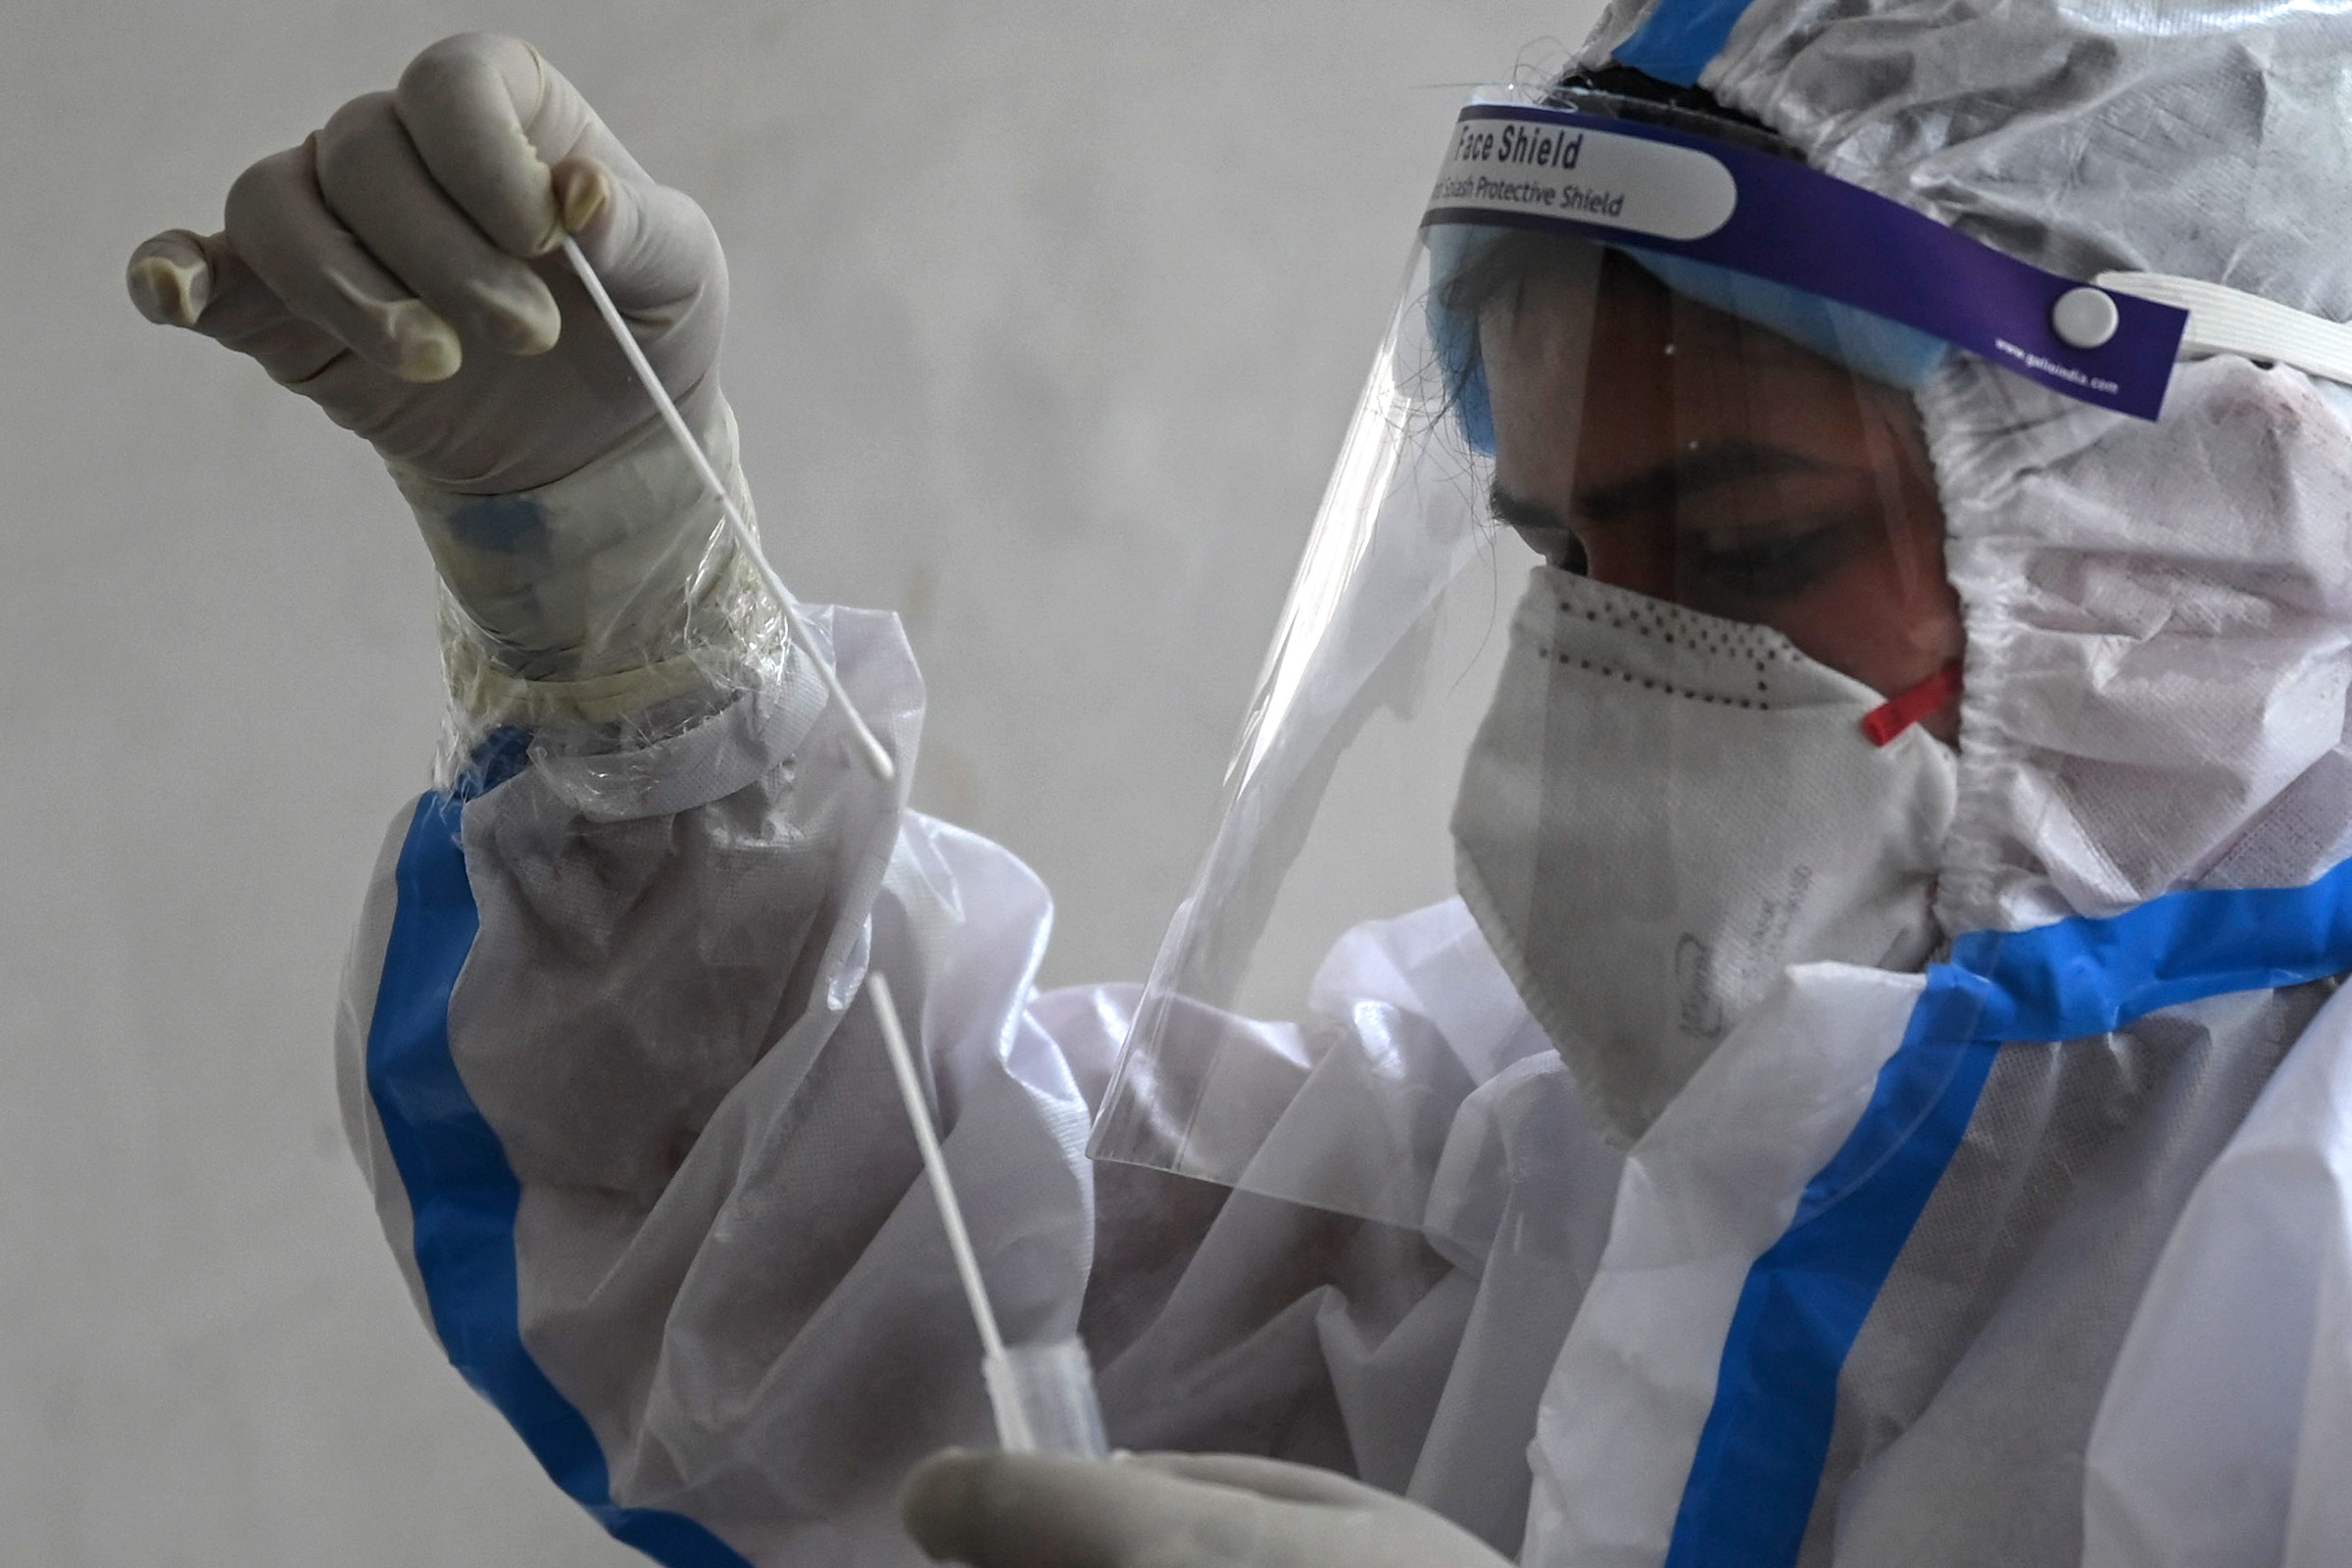 A health worker collects a swab sample for a Covid-19 test at a community center in New Delhi, India, on April 28.